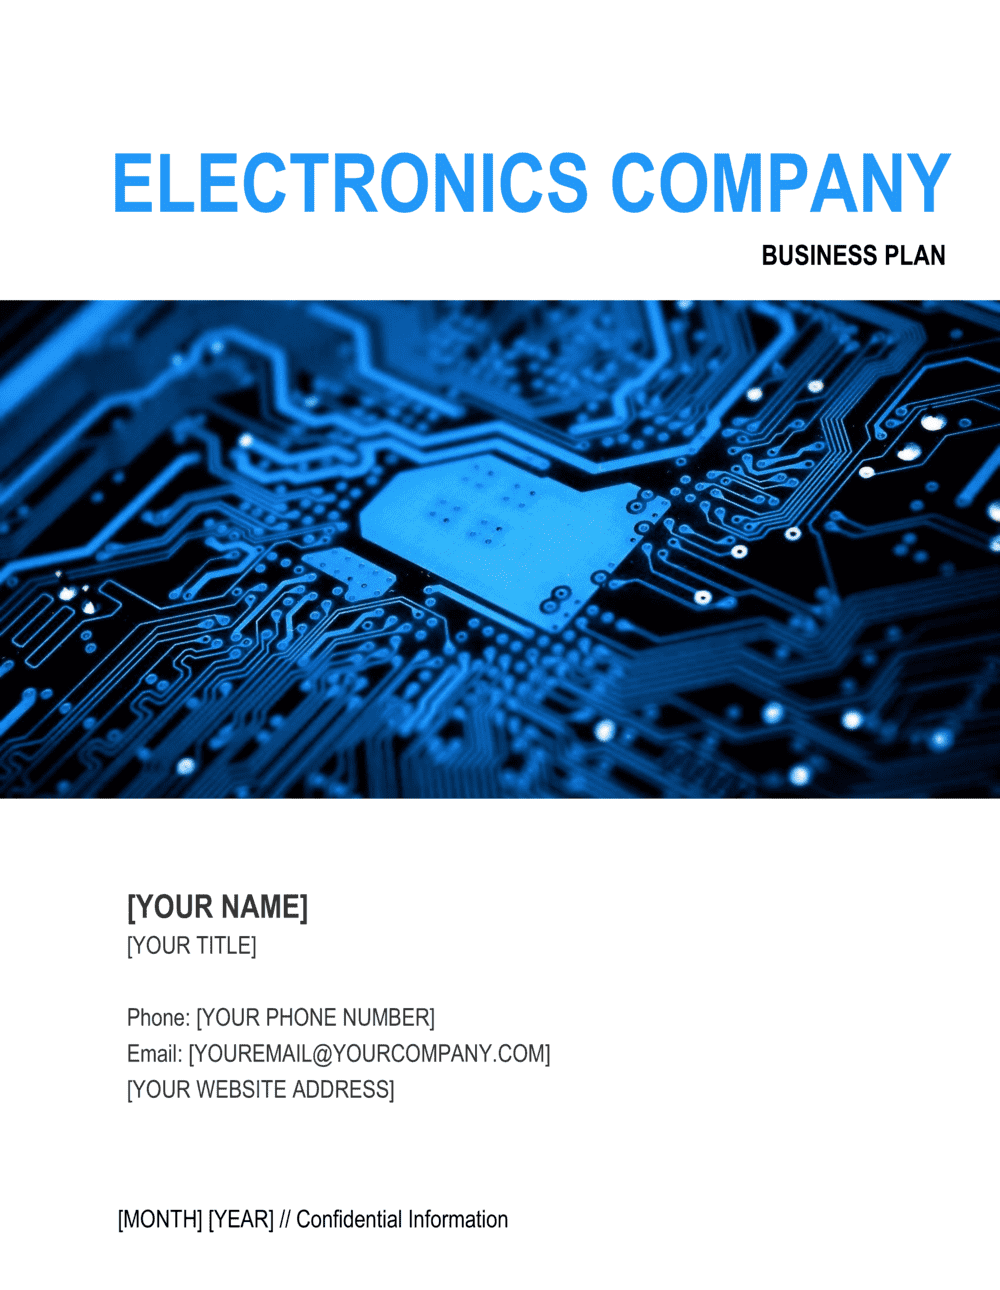 Business-in-a-Box's Electronics Company Business Plan Template